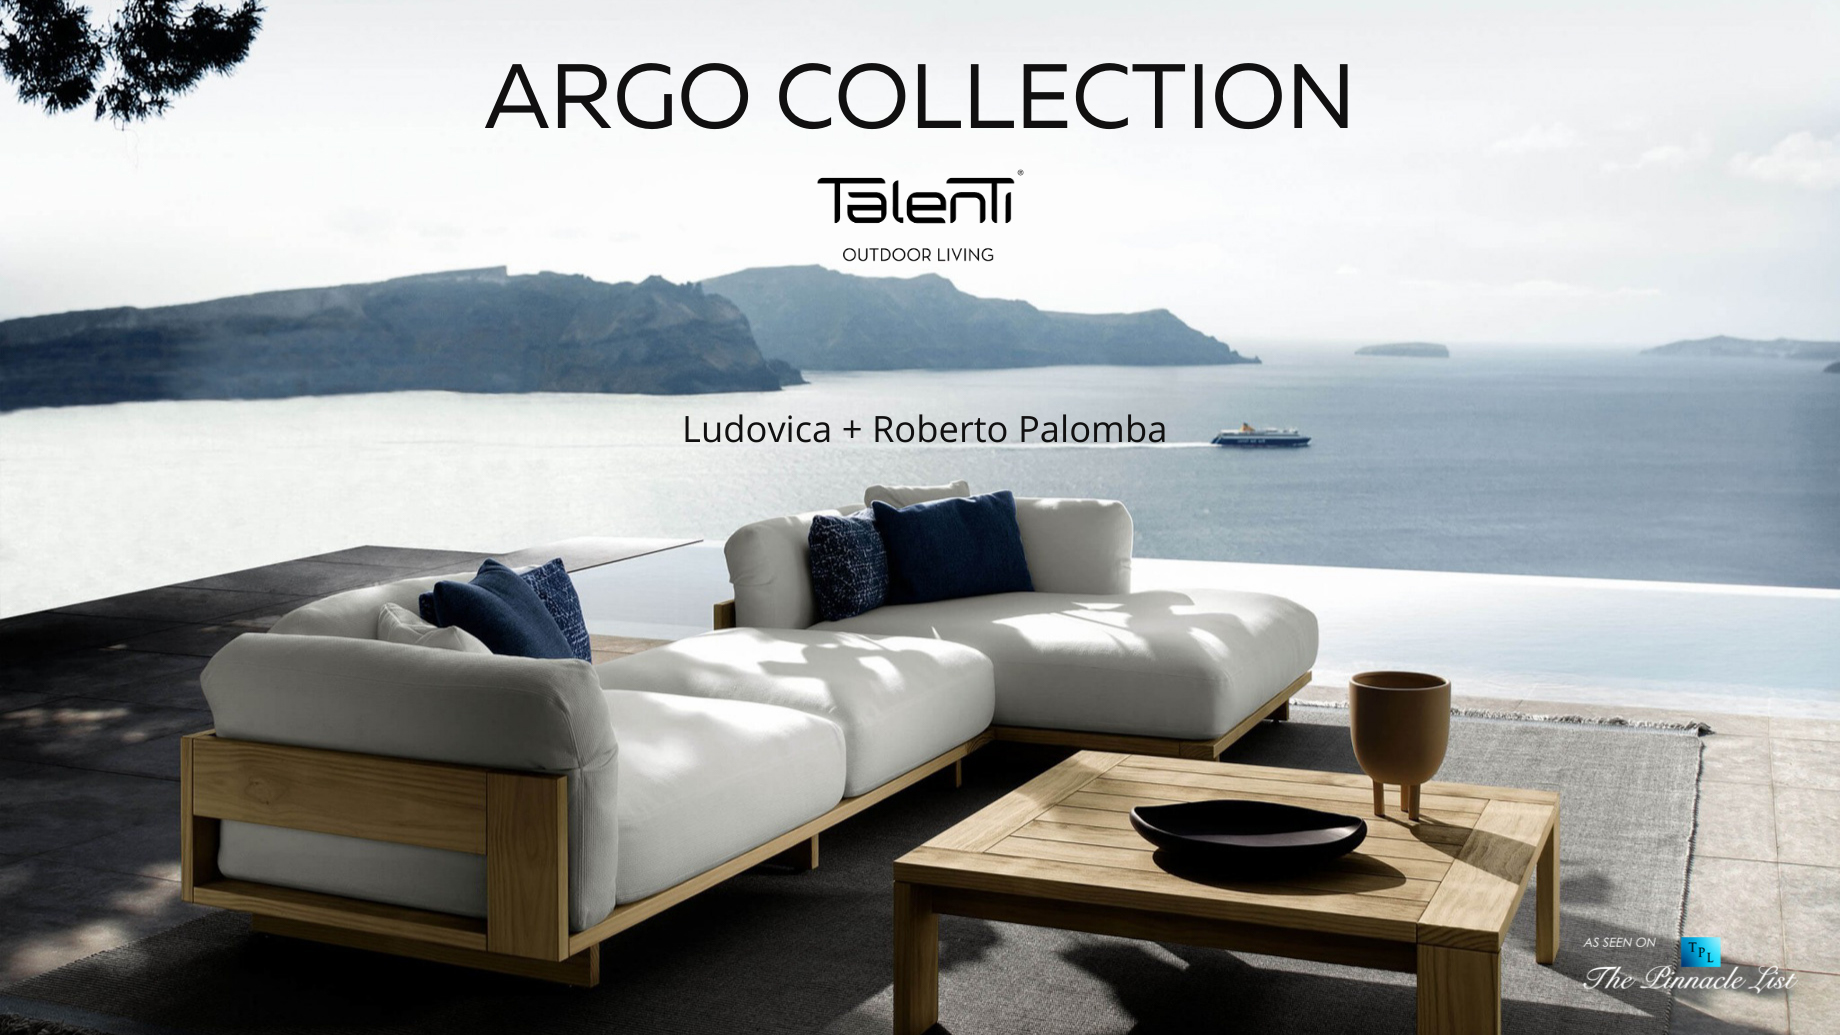 Argo Outdoor Furniture Collection by Talenti Outdoor Living Italy